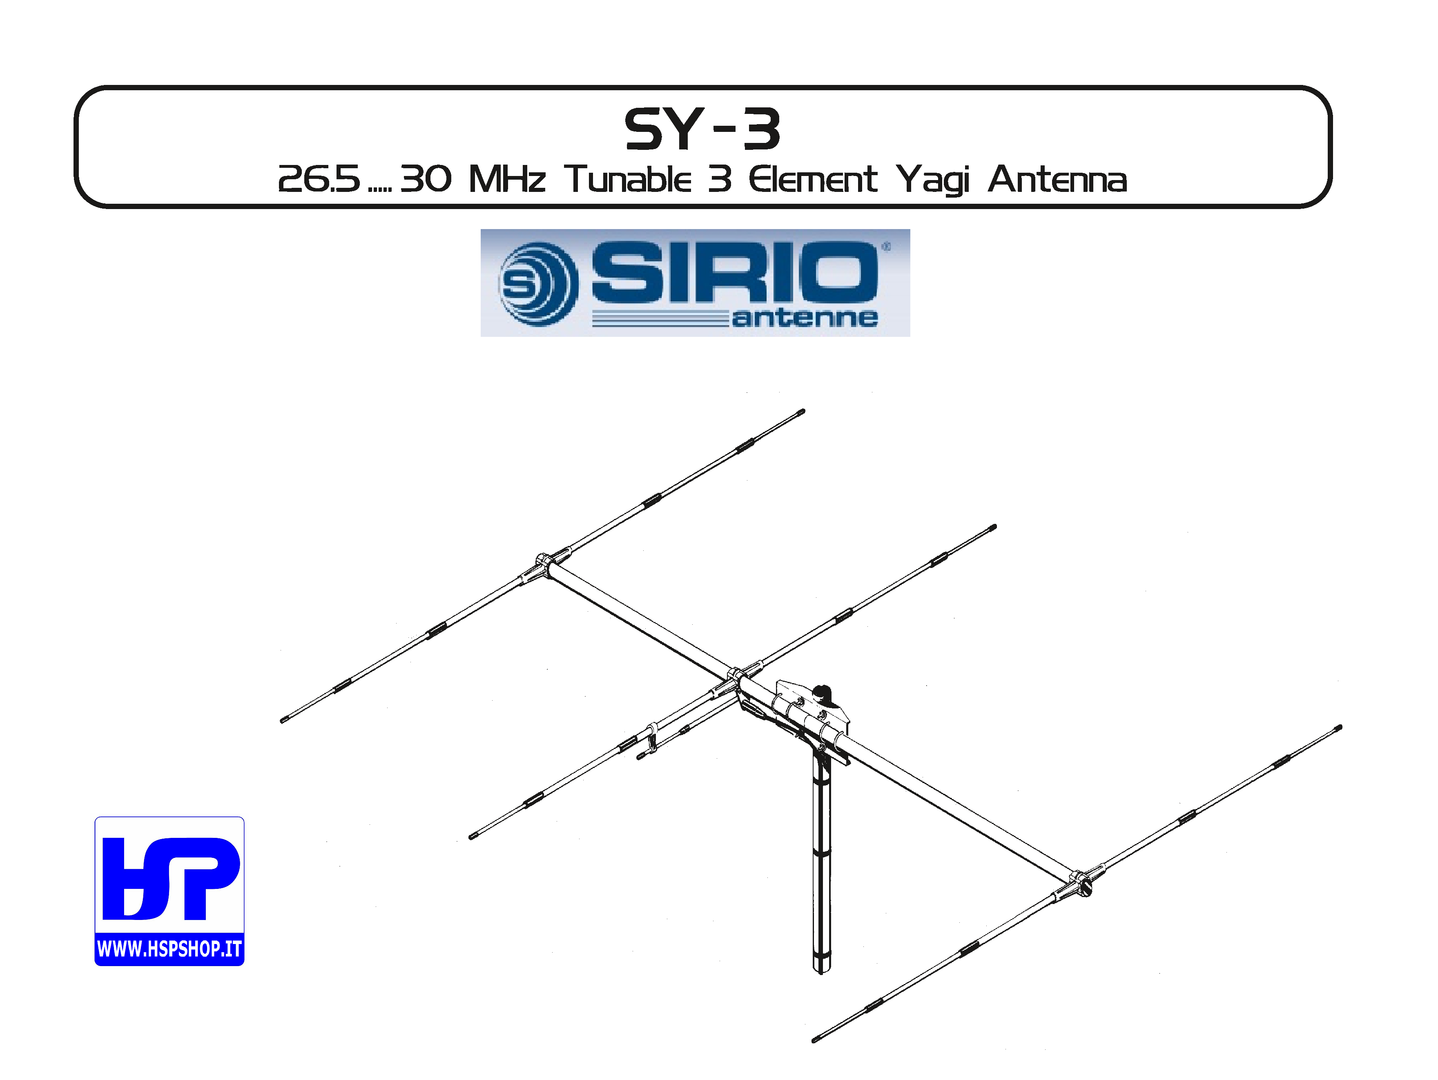 SIRIO - SY-3 - 3 ELEMENT BEAM 26.5-30 MHz